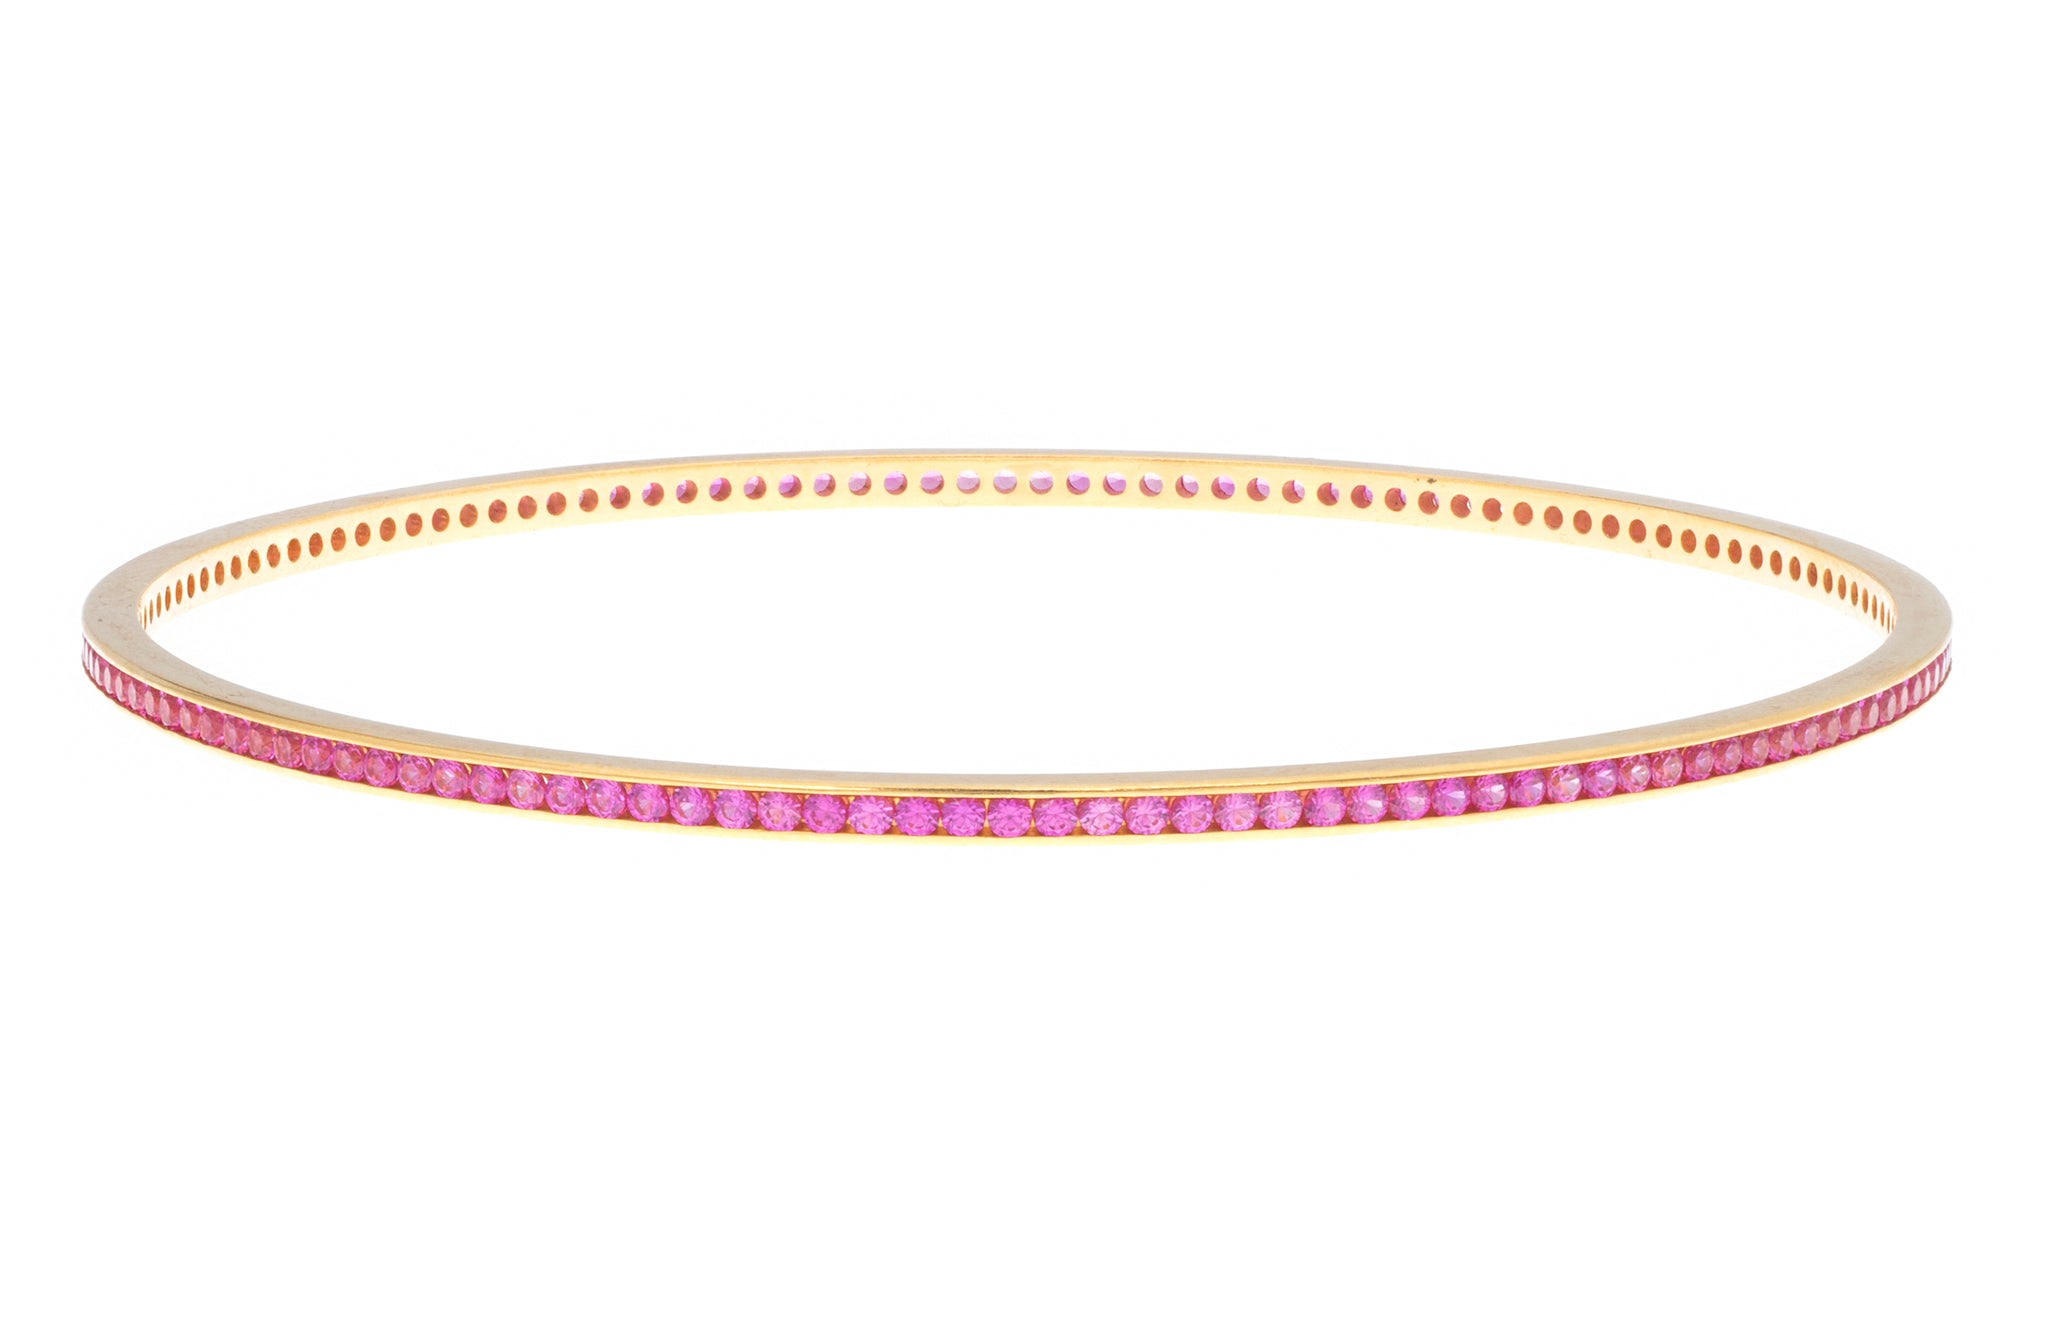 22ct Yellow Gold Bangles set with Pink Stones B-1526